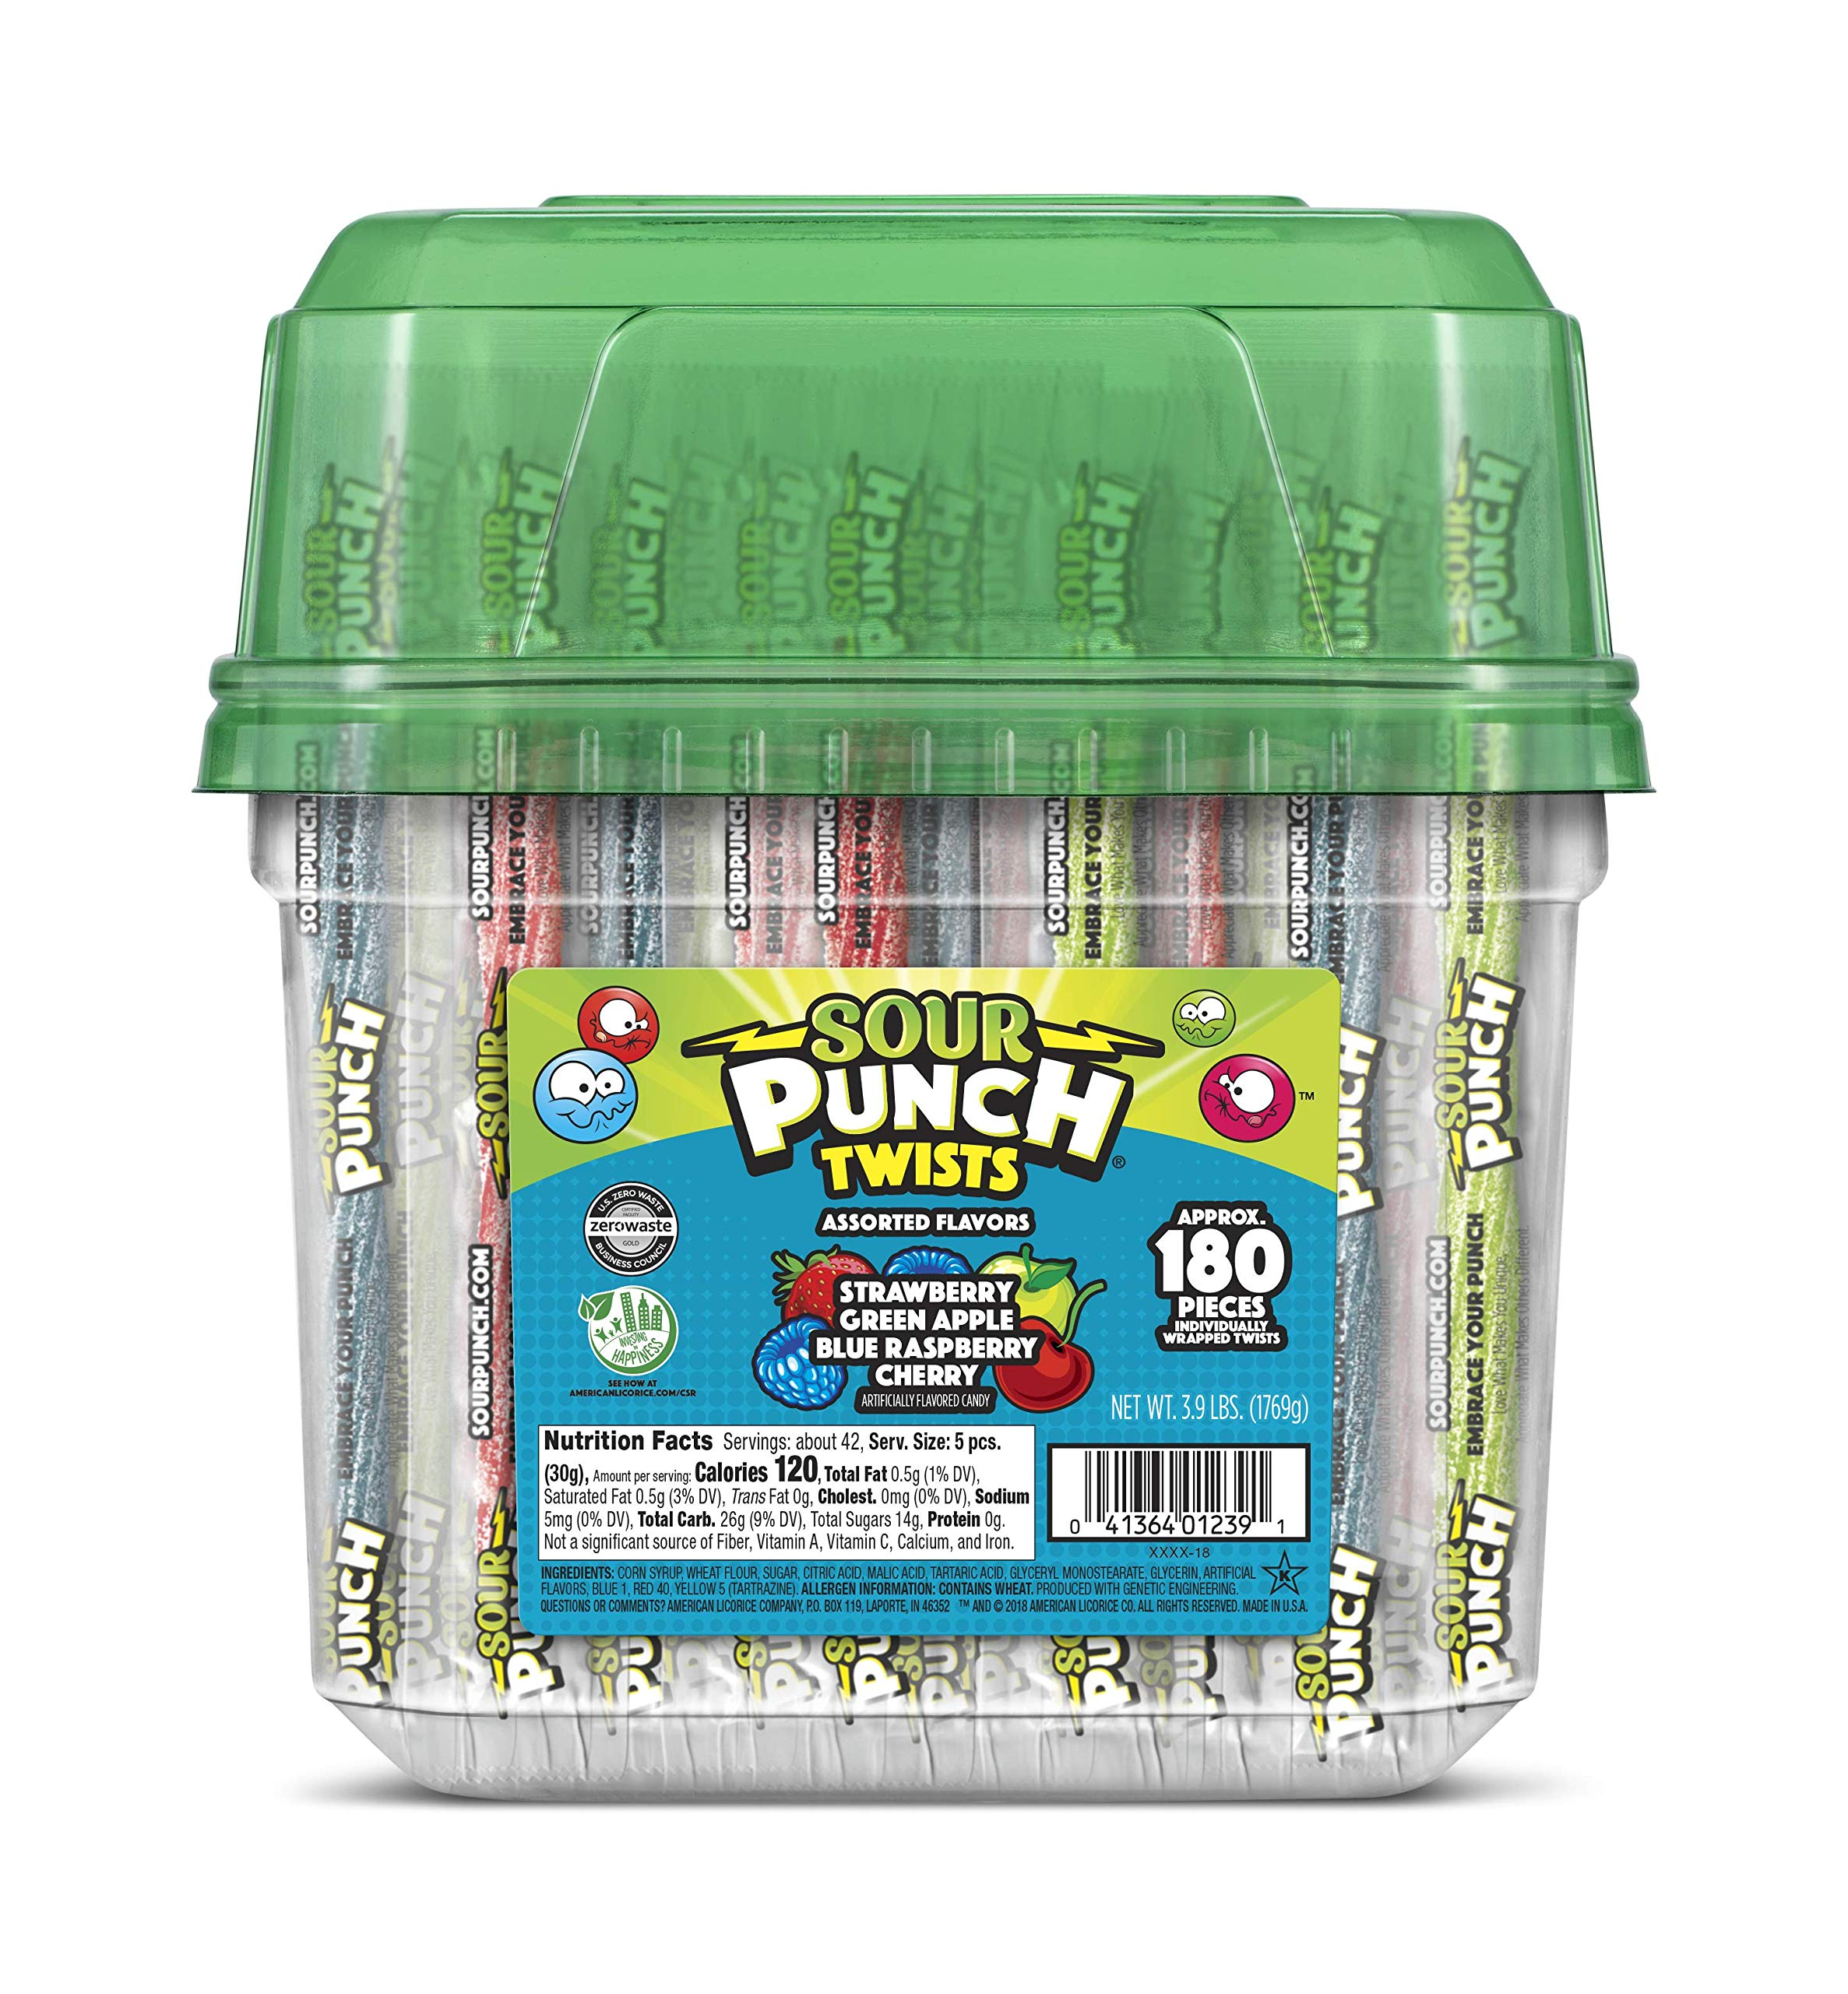 Sour Punch Twists, 6'' Individually Wrapped Soft & Chewy Candy, 4 Fruit Flavors, 3.9-Lb Tub by SOUTHERN STYLE NUTS